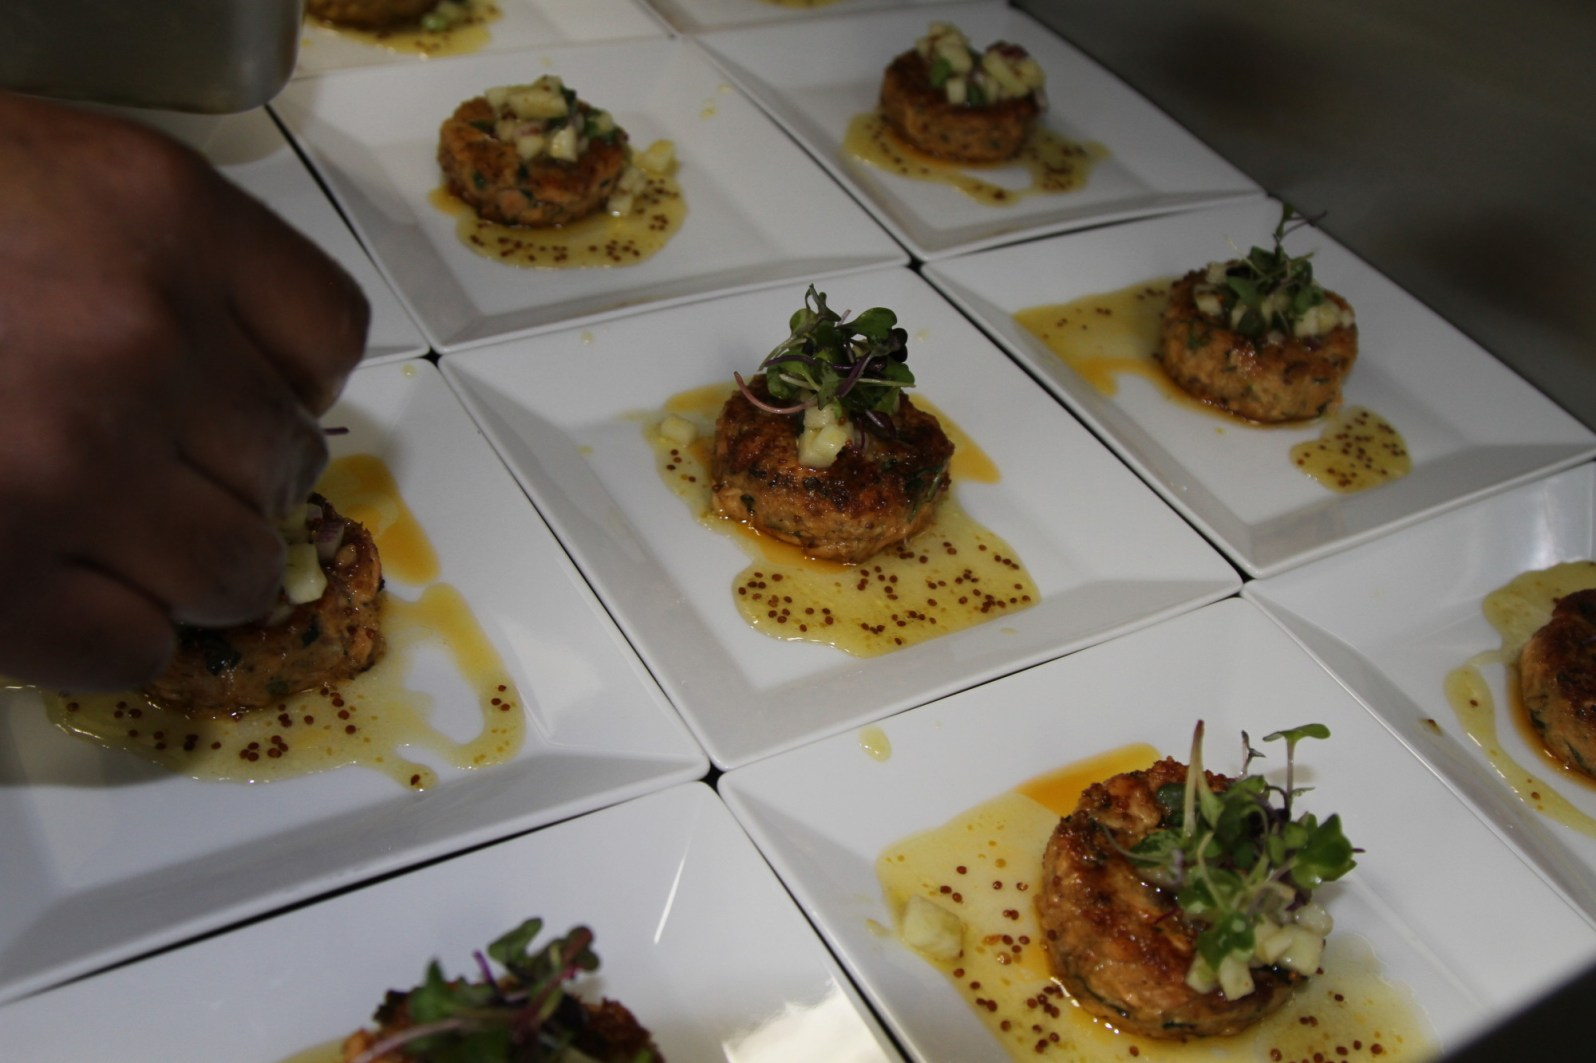 Salmon cakes from Art & Craft.